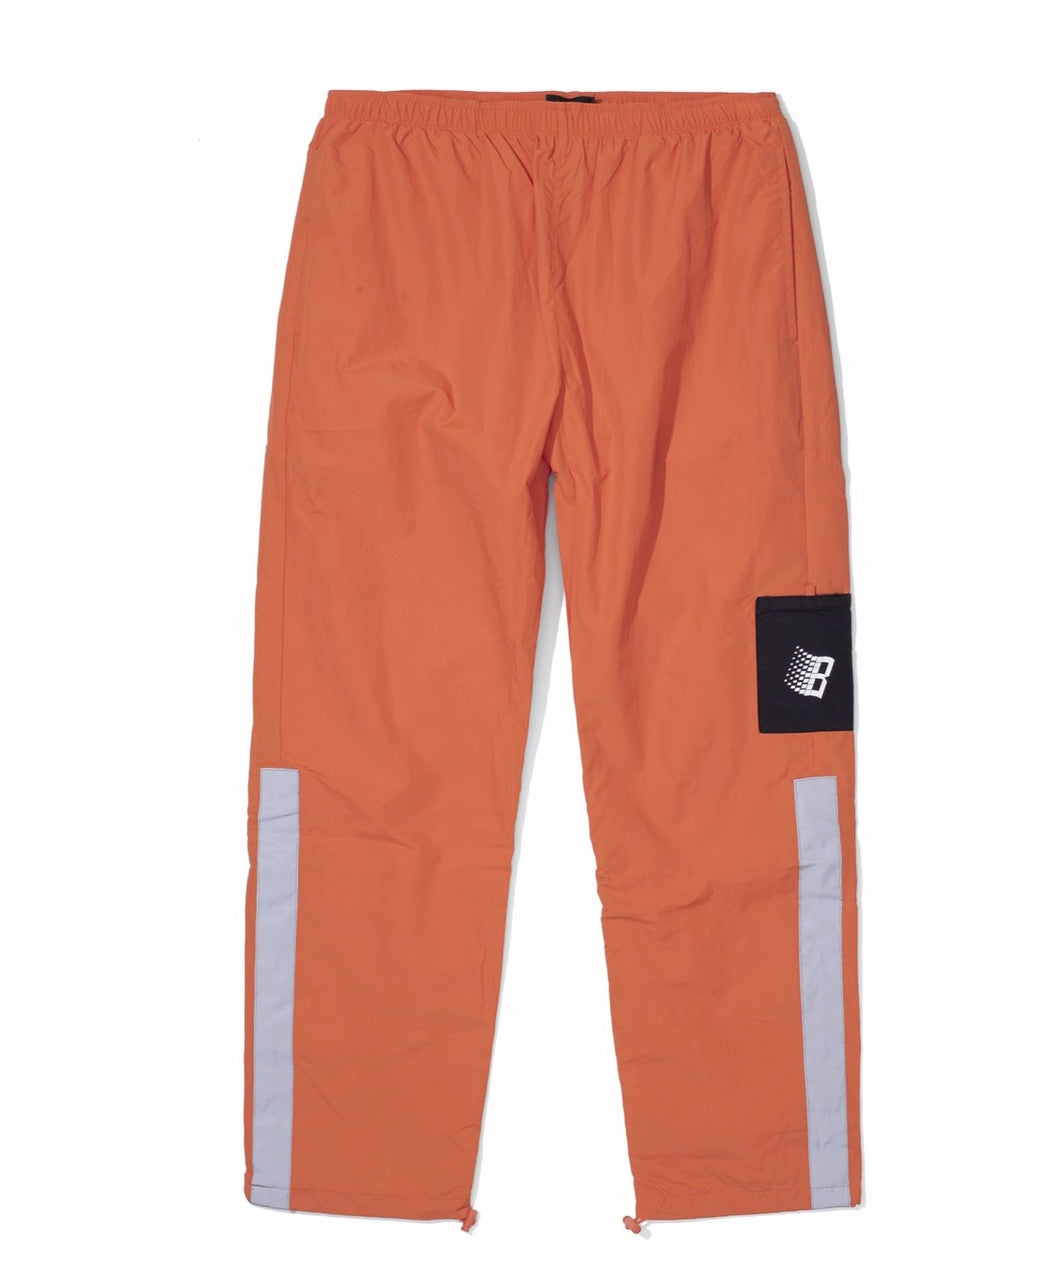 Bronze Track Pants - Orange